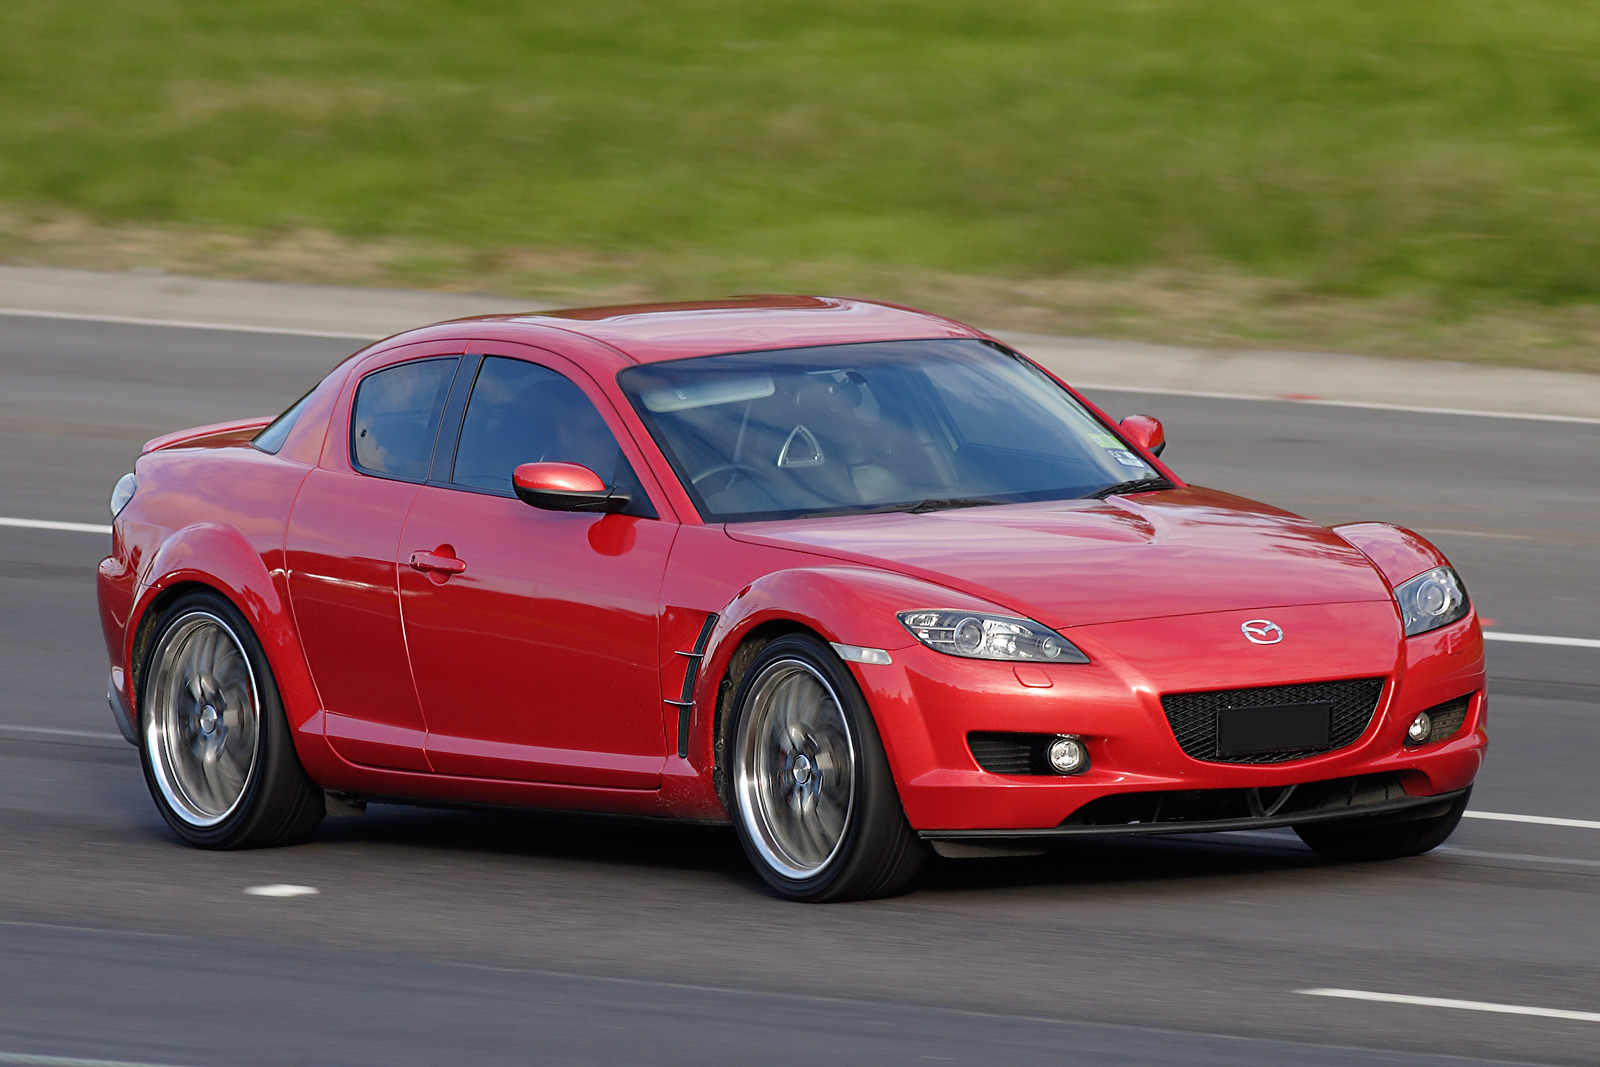 Mazda_RX 8_on_freeway